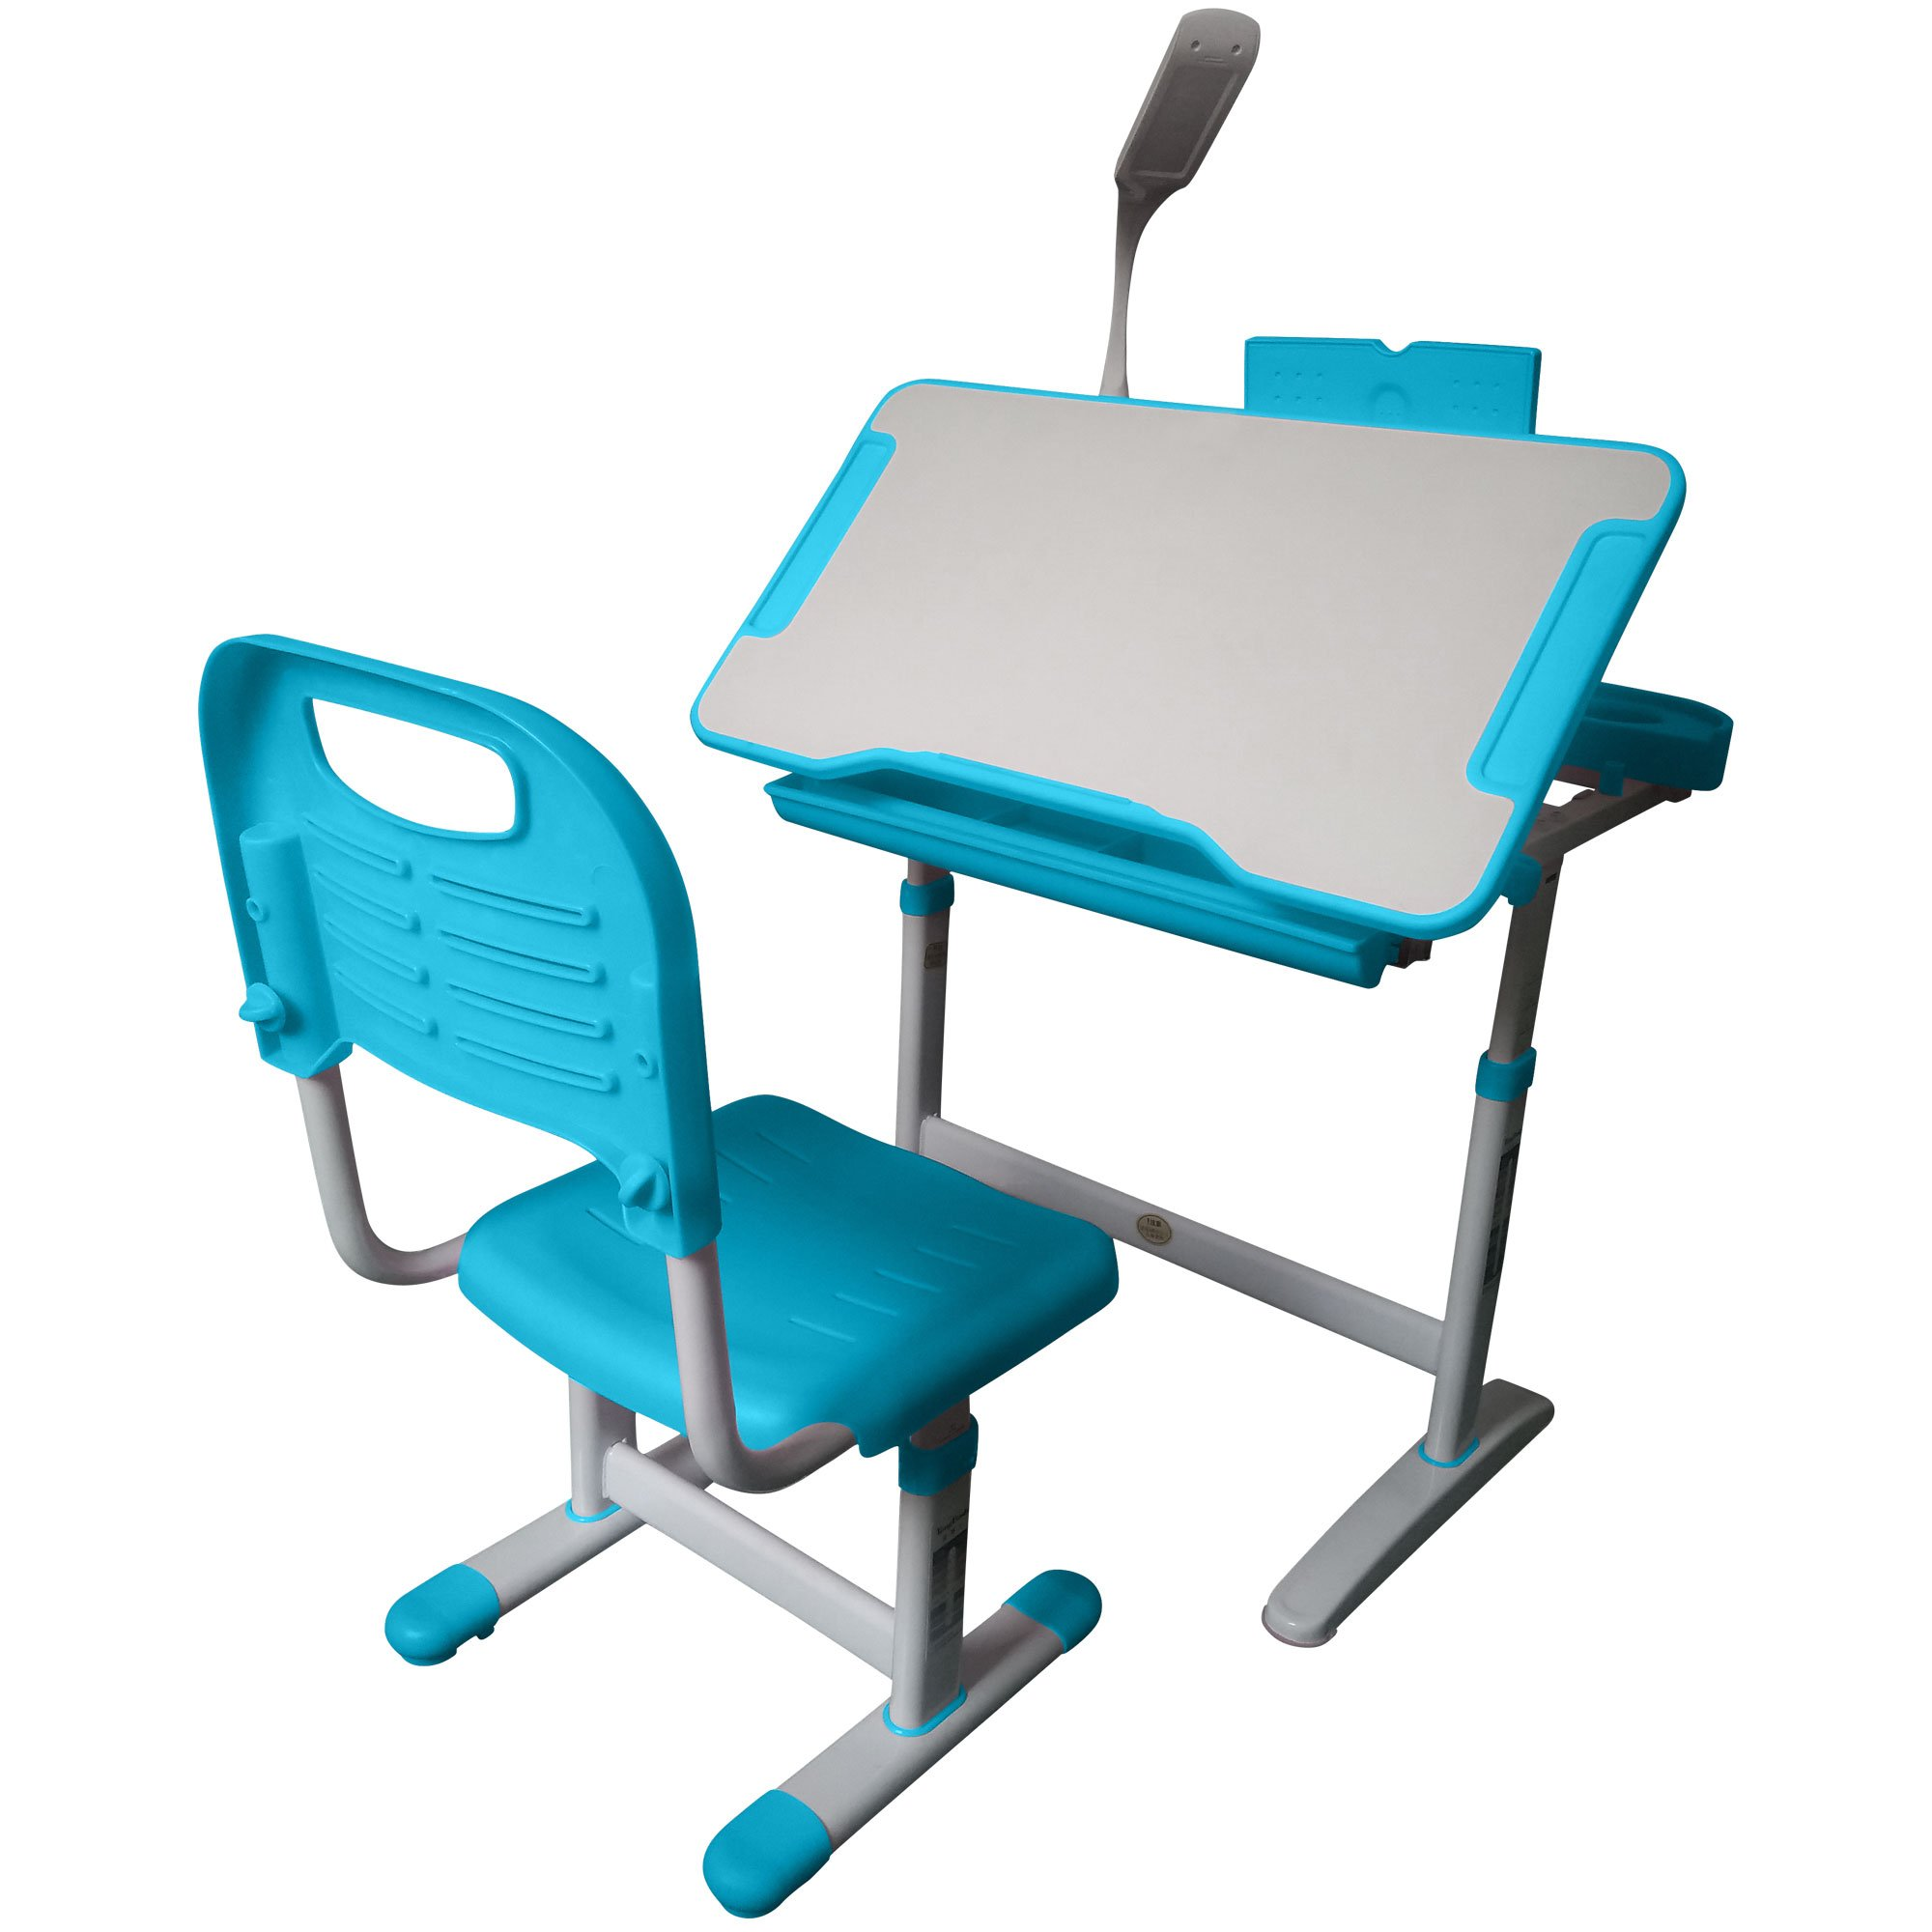 ergonomic-kids-desk-chair-height-adjustable-study-desk-Midi-Blue-desk-02